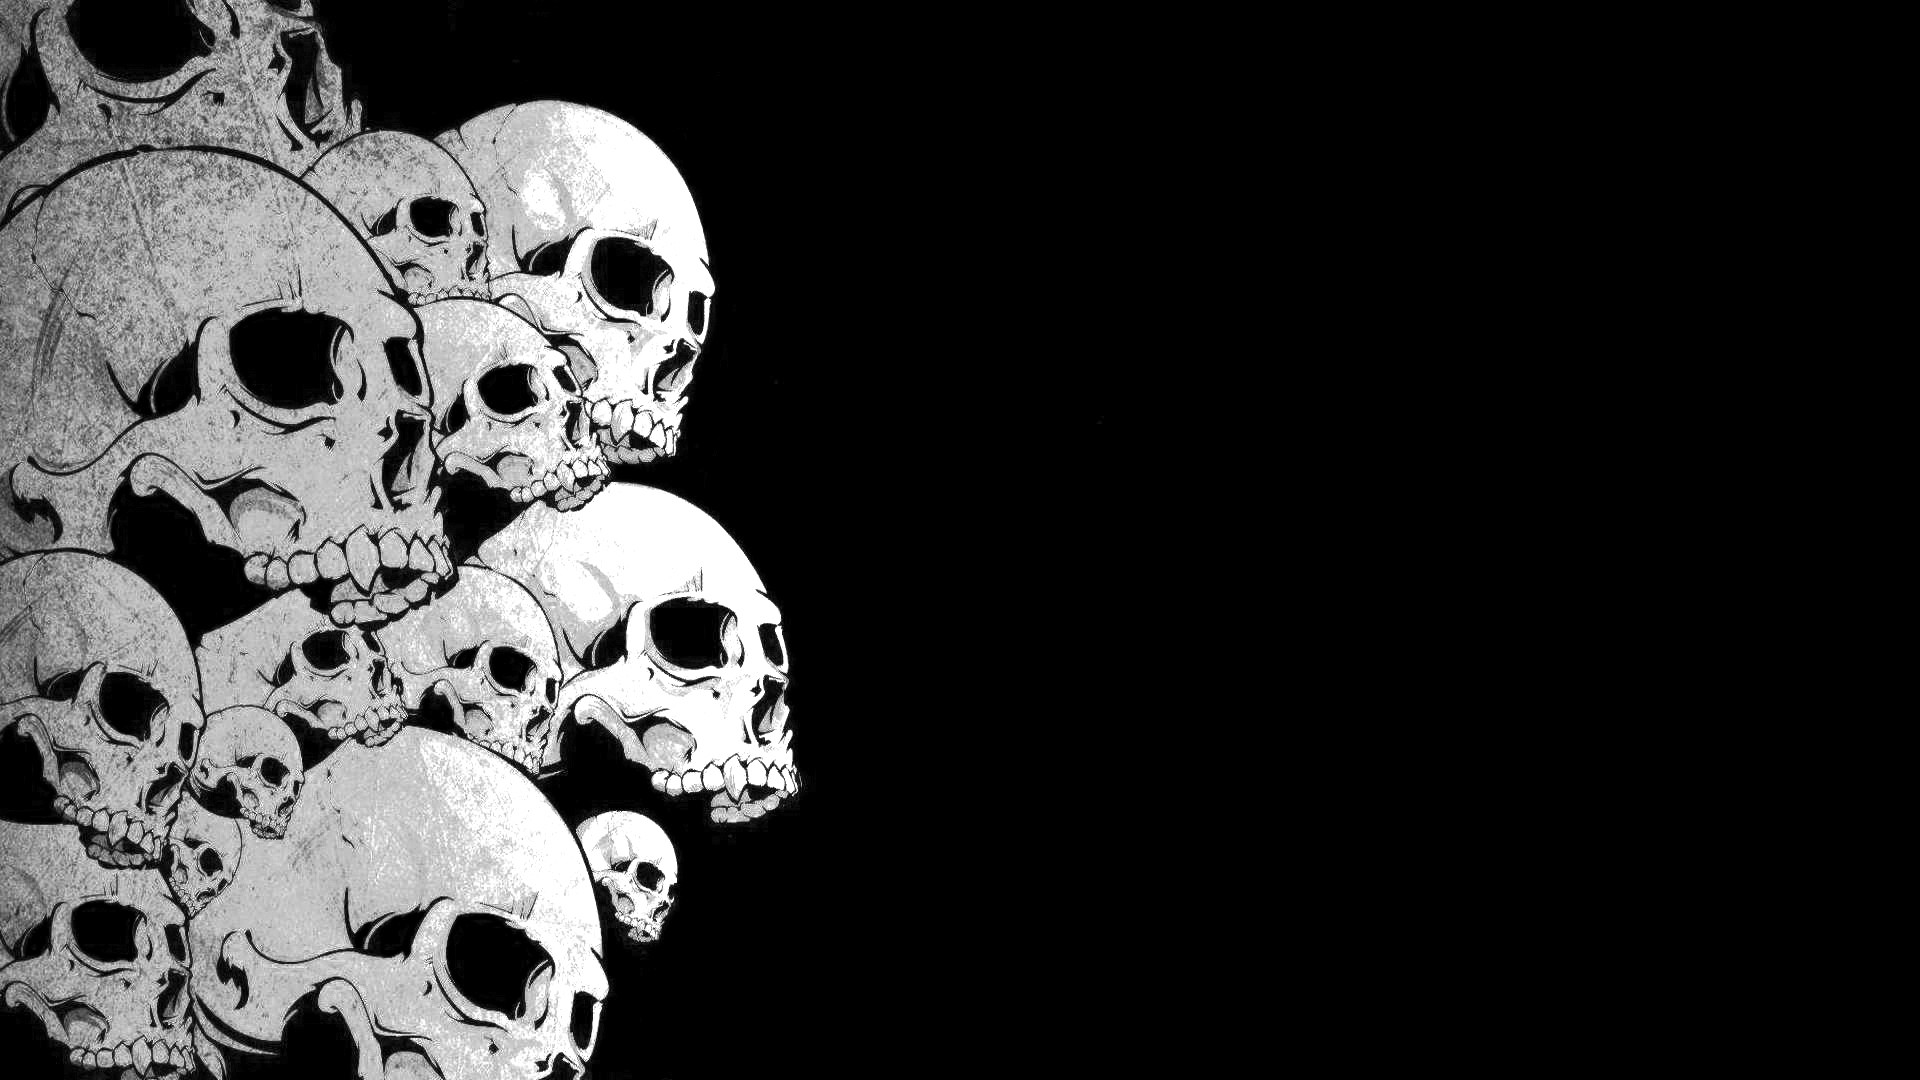 Skull Wallpapers For Mobile 52 Images